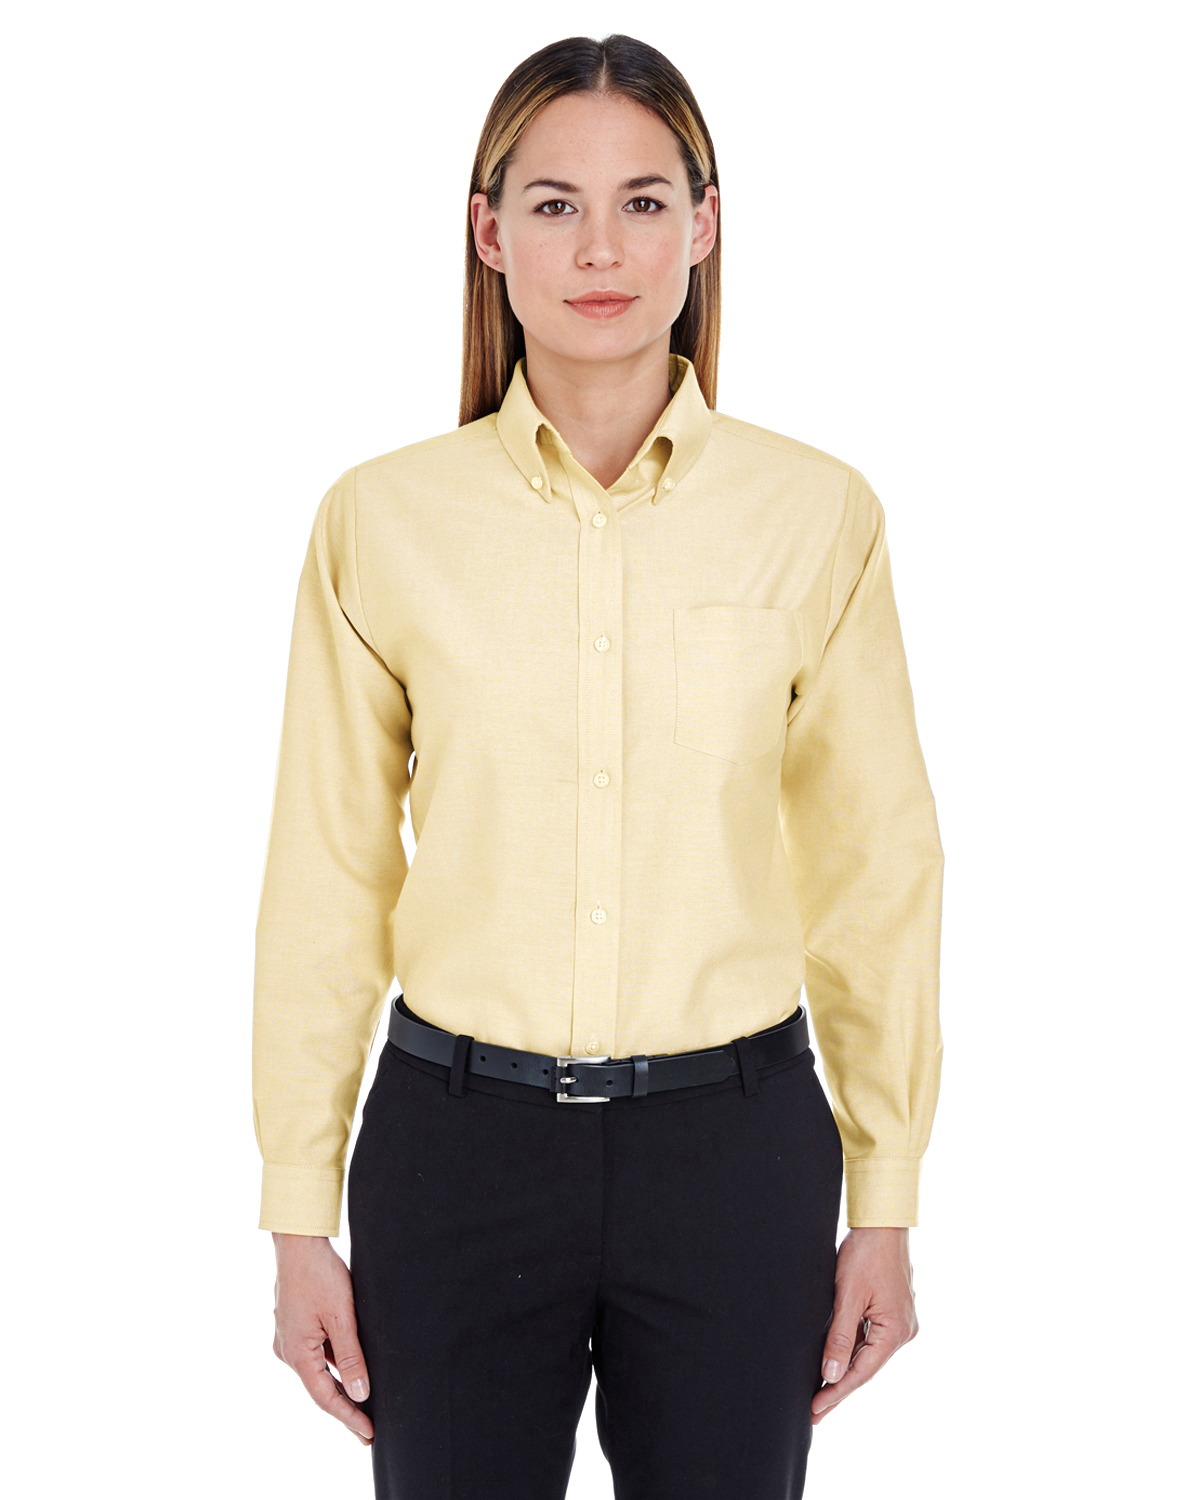 UltraClub 8990 - Ladies' Classic Wrinkle-Free Long-Sleeve ...